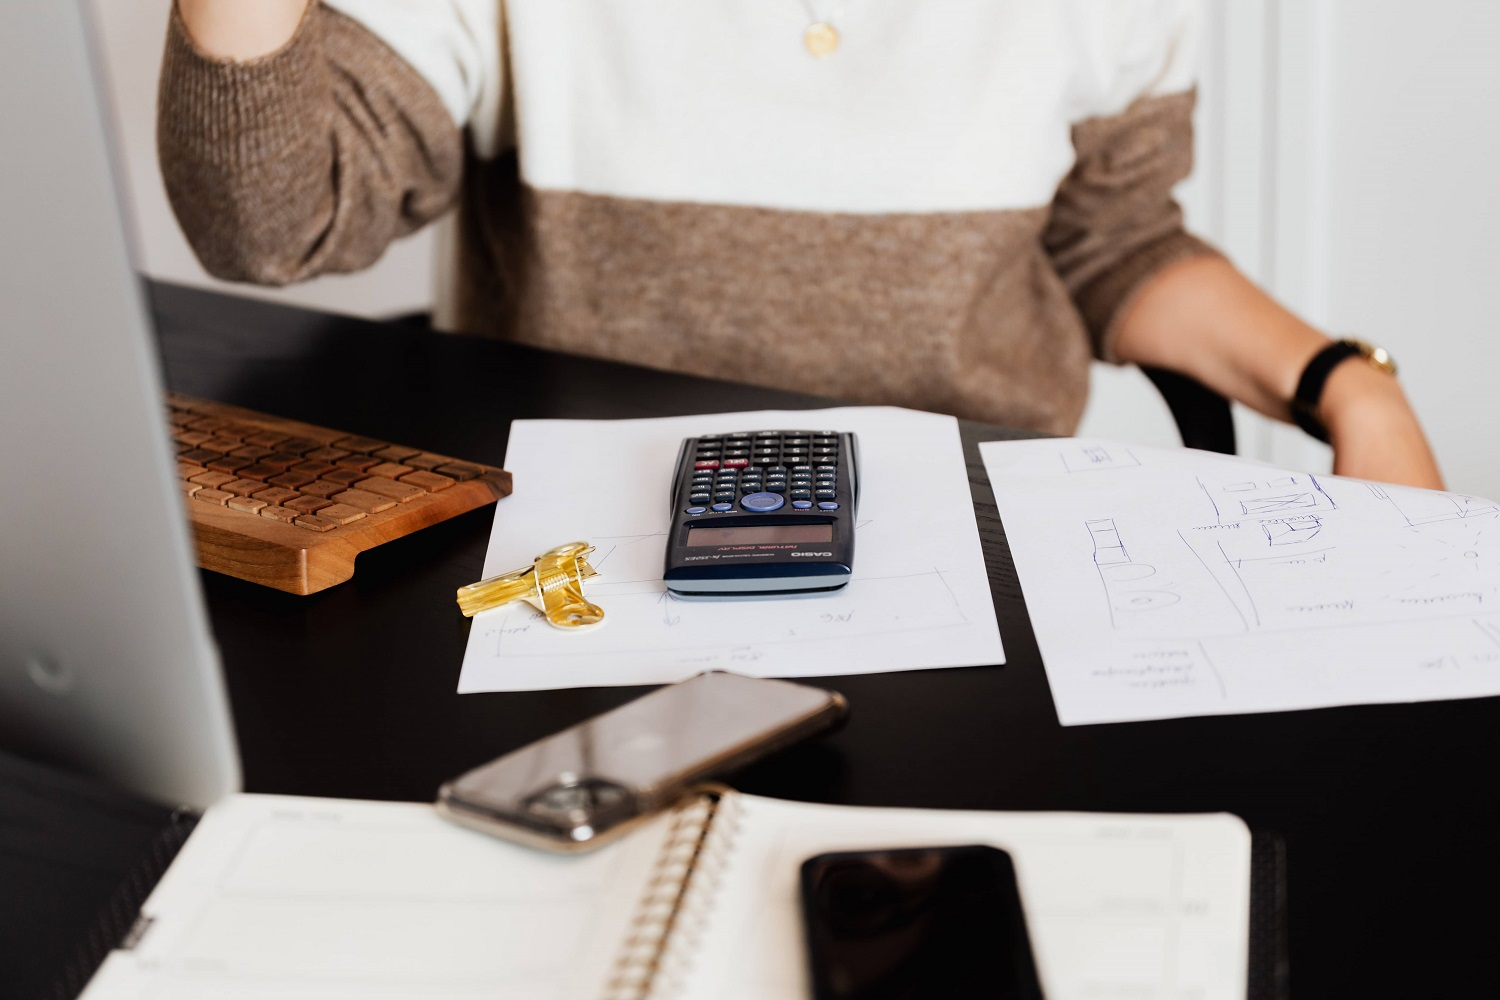 desk with papers and calculator